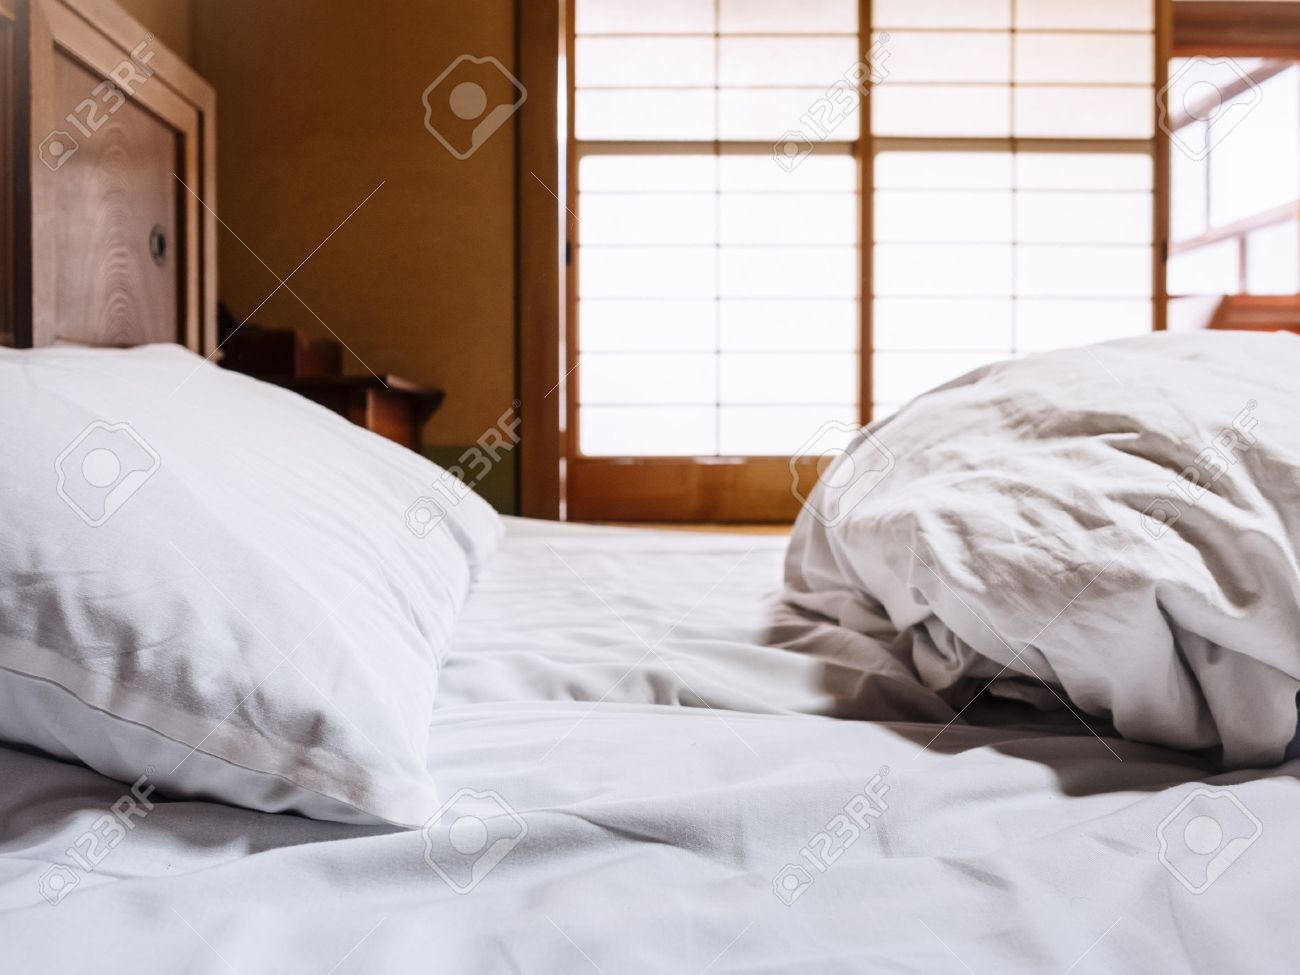 bed sheets mattress with pillow futon japanese style room background stock photo   50986747 bed sheets mattress with pillow futon japanese style room      rh   123rf